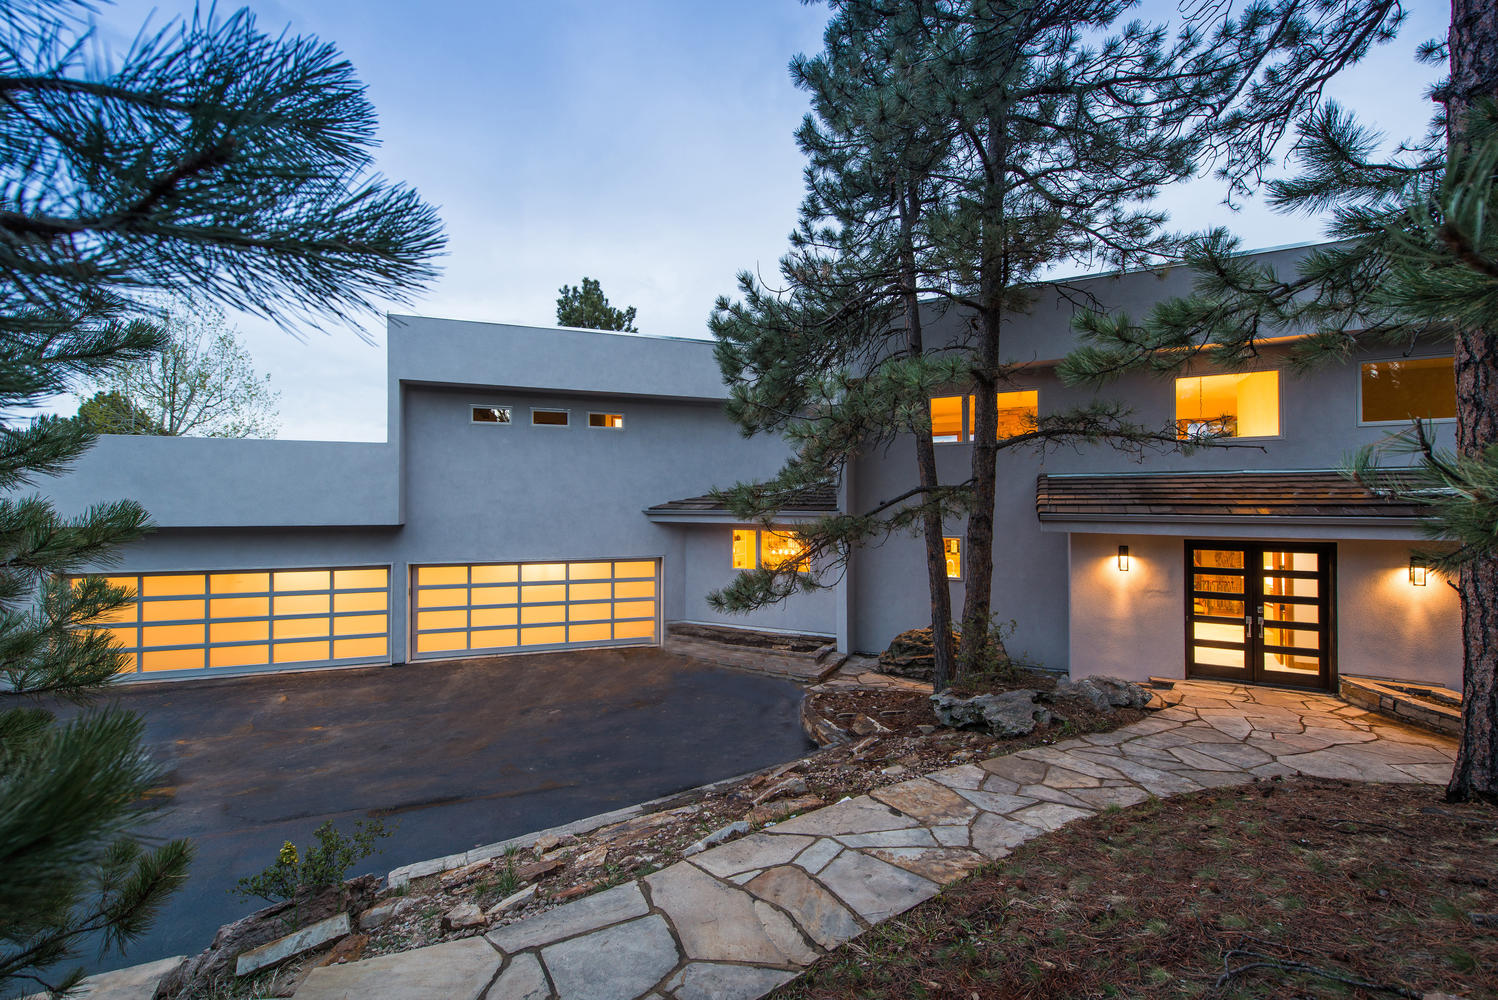 獨棟家庭住宅 為 出售 在 Incredible Custom Home Has Timeless Architectural Lines 1992 Columbine Court Golden, 科羅拉多州, 80401 美國